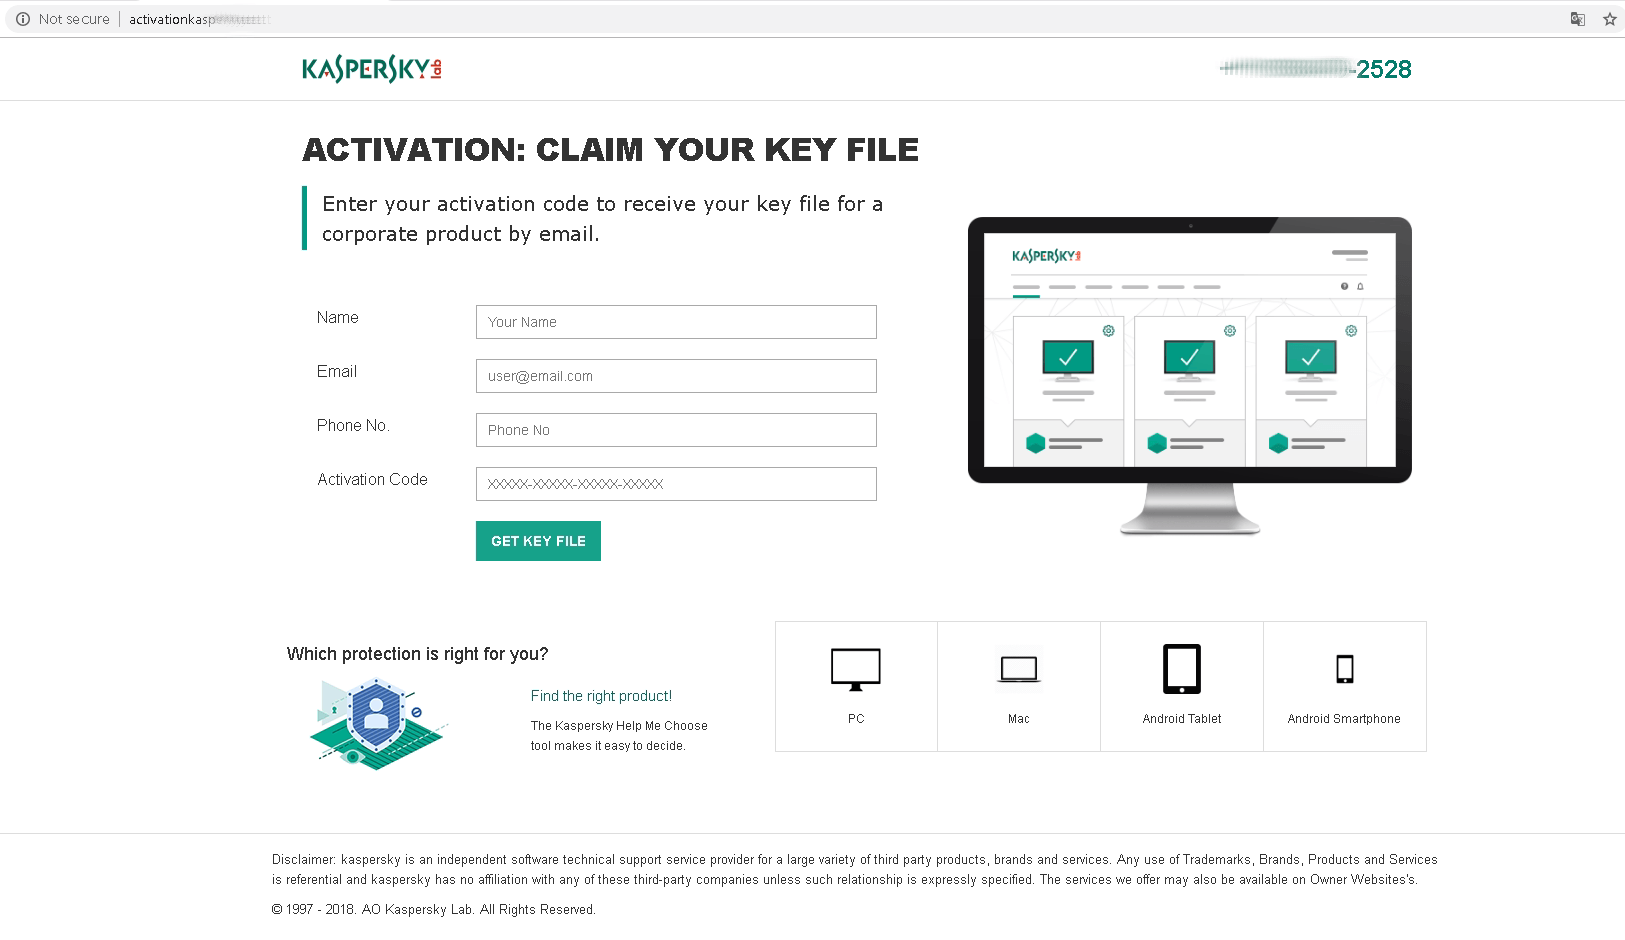 This fake Kaspersky Lab support website prompts for the user's antivirus activation code